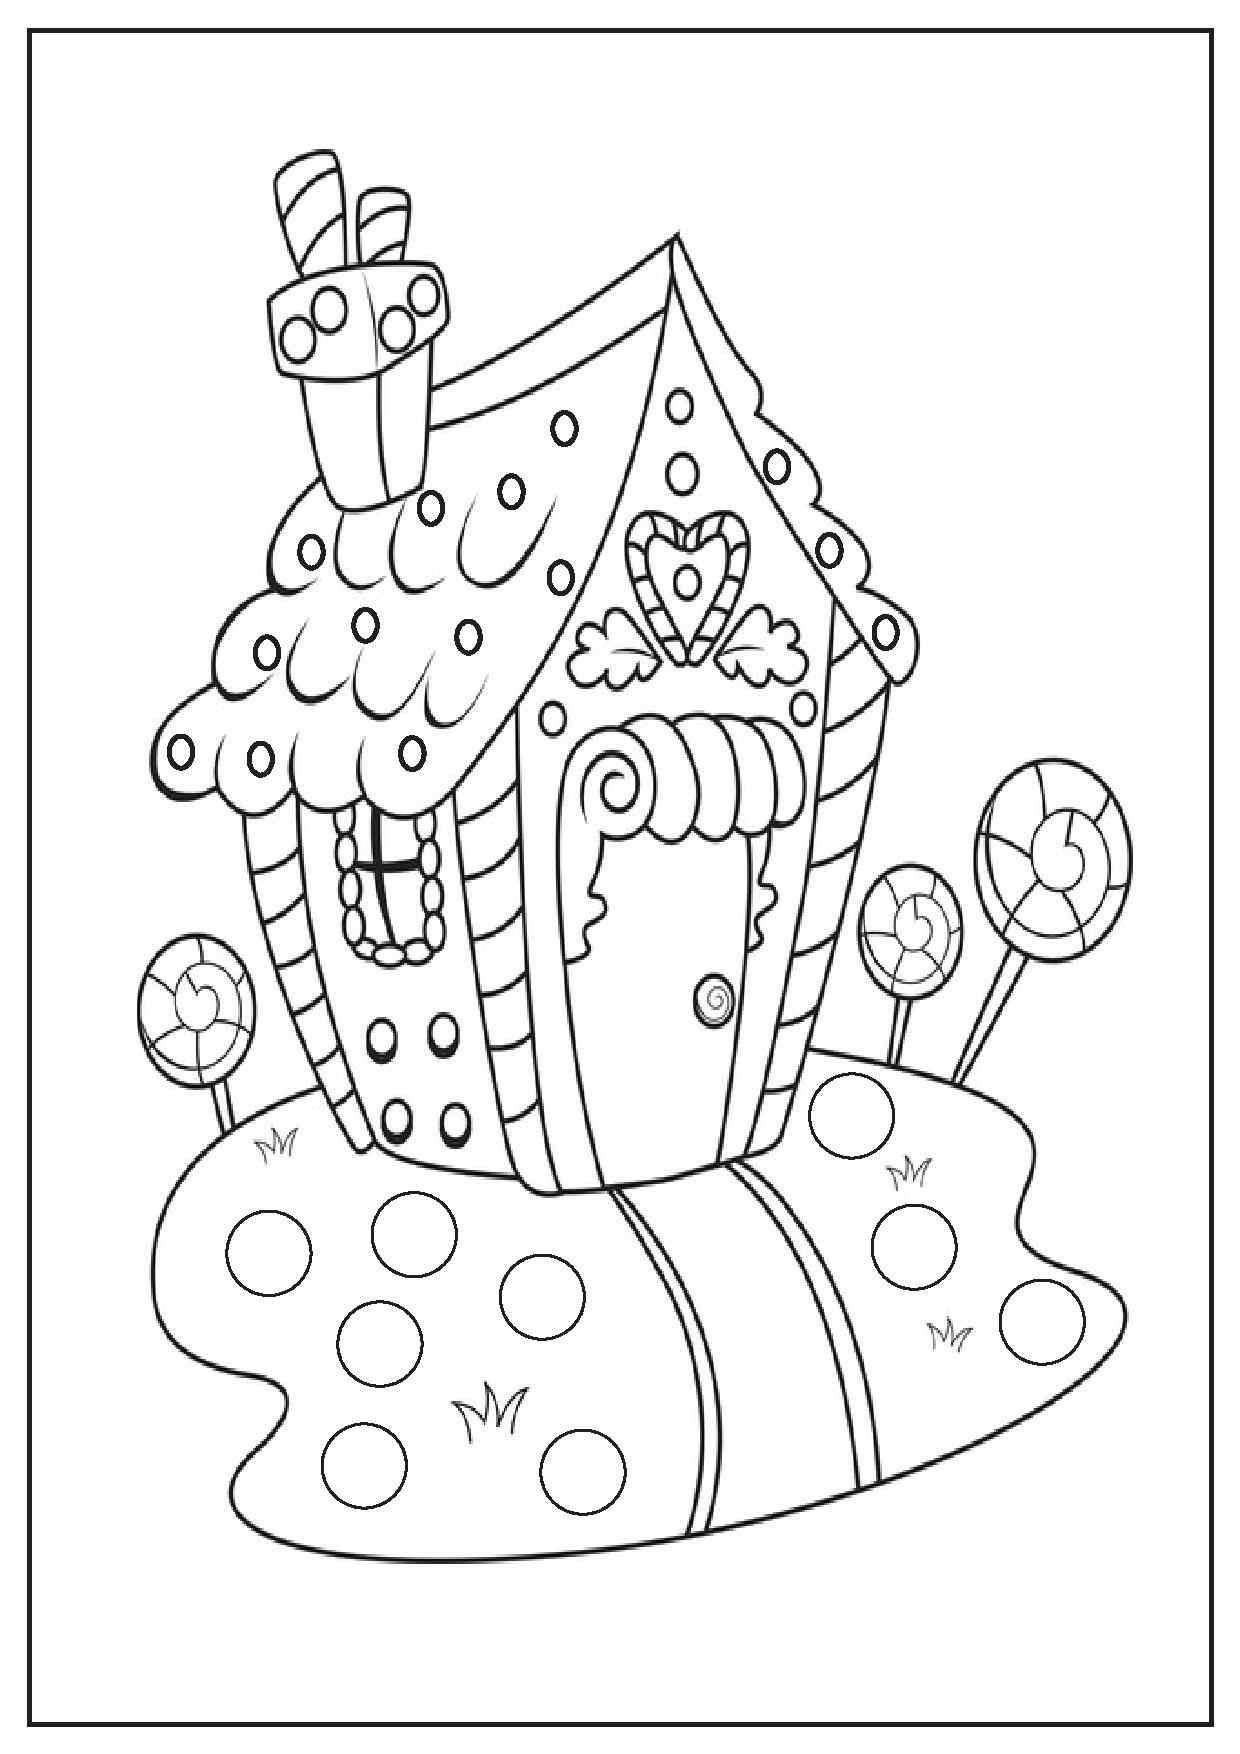 teacher designed classroom ready christmas coloring pages printables and resources - Christmas Pages Color Printable